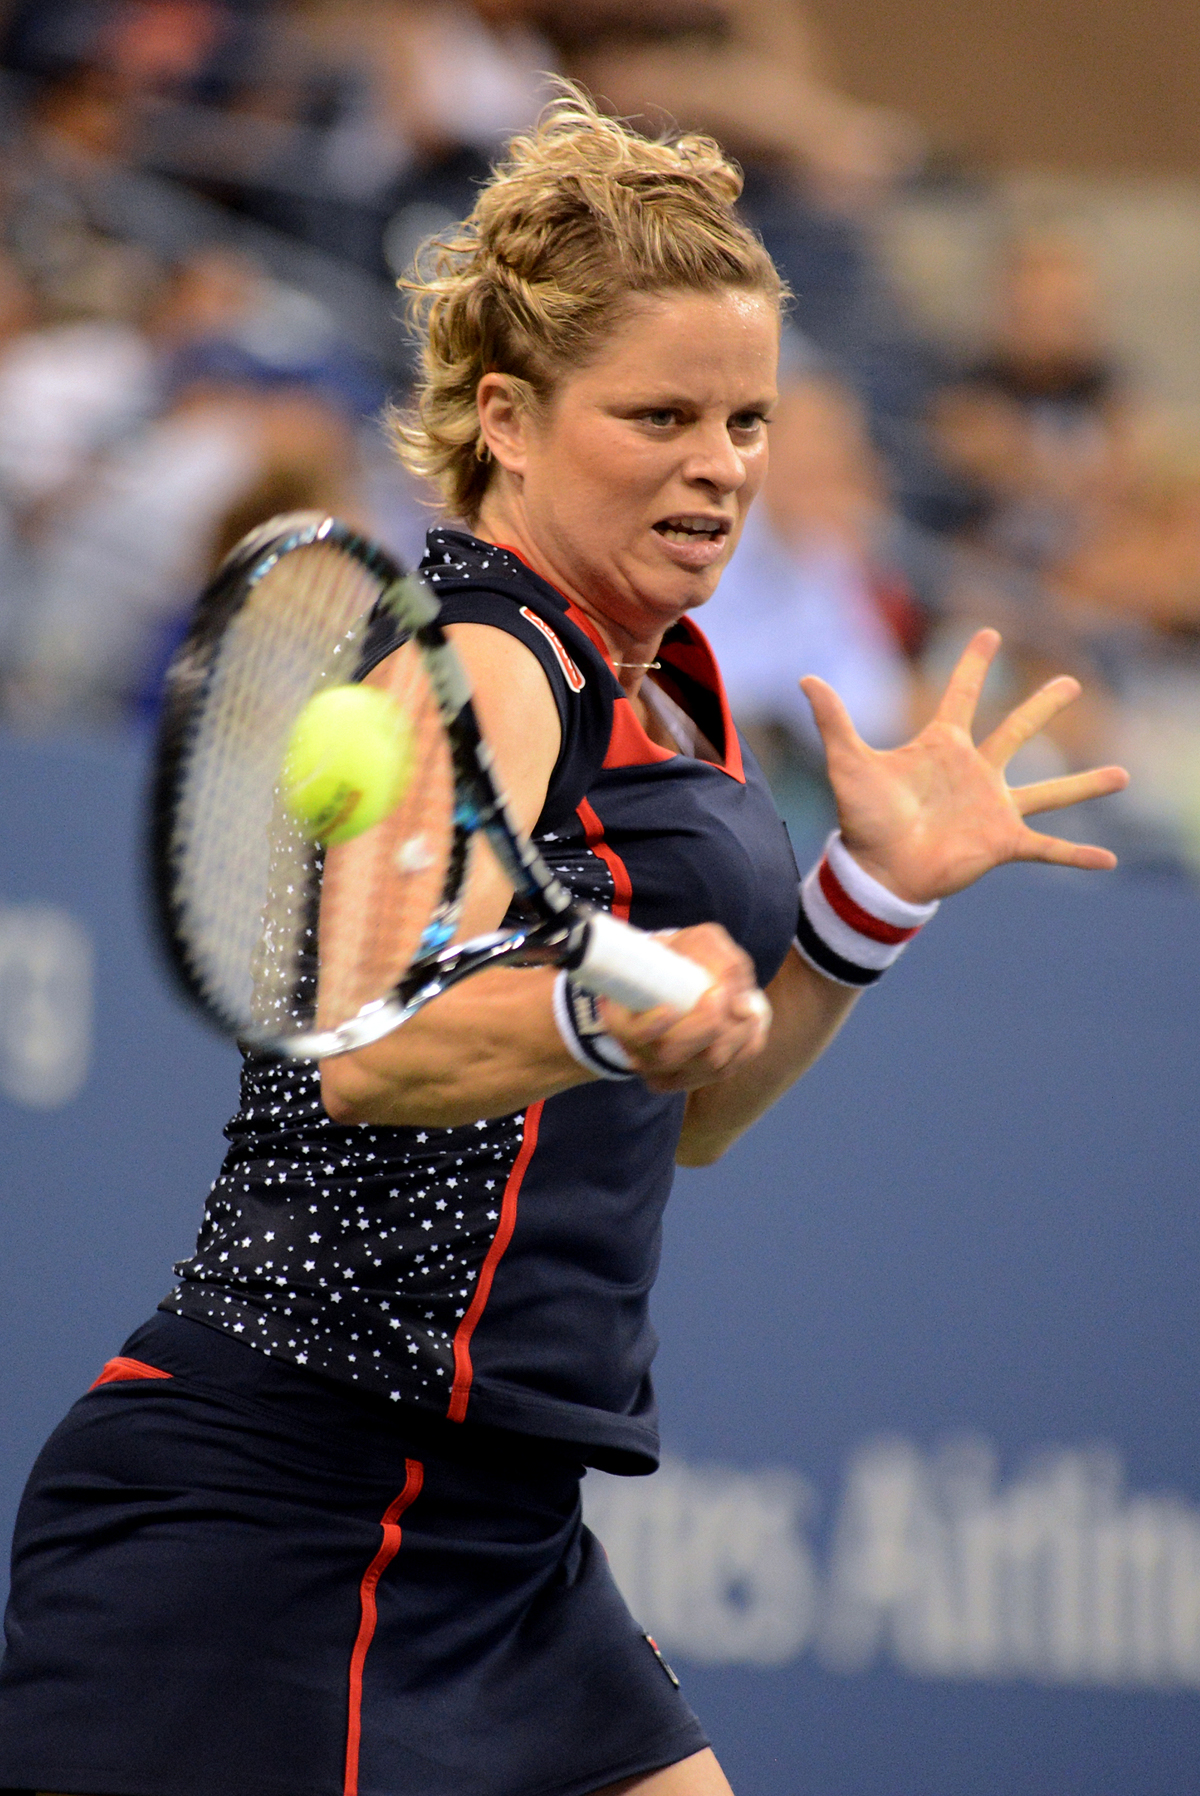 f27aug121395clijsters-7ece.jpg